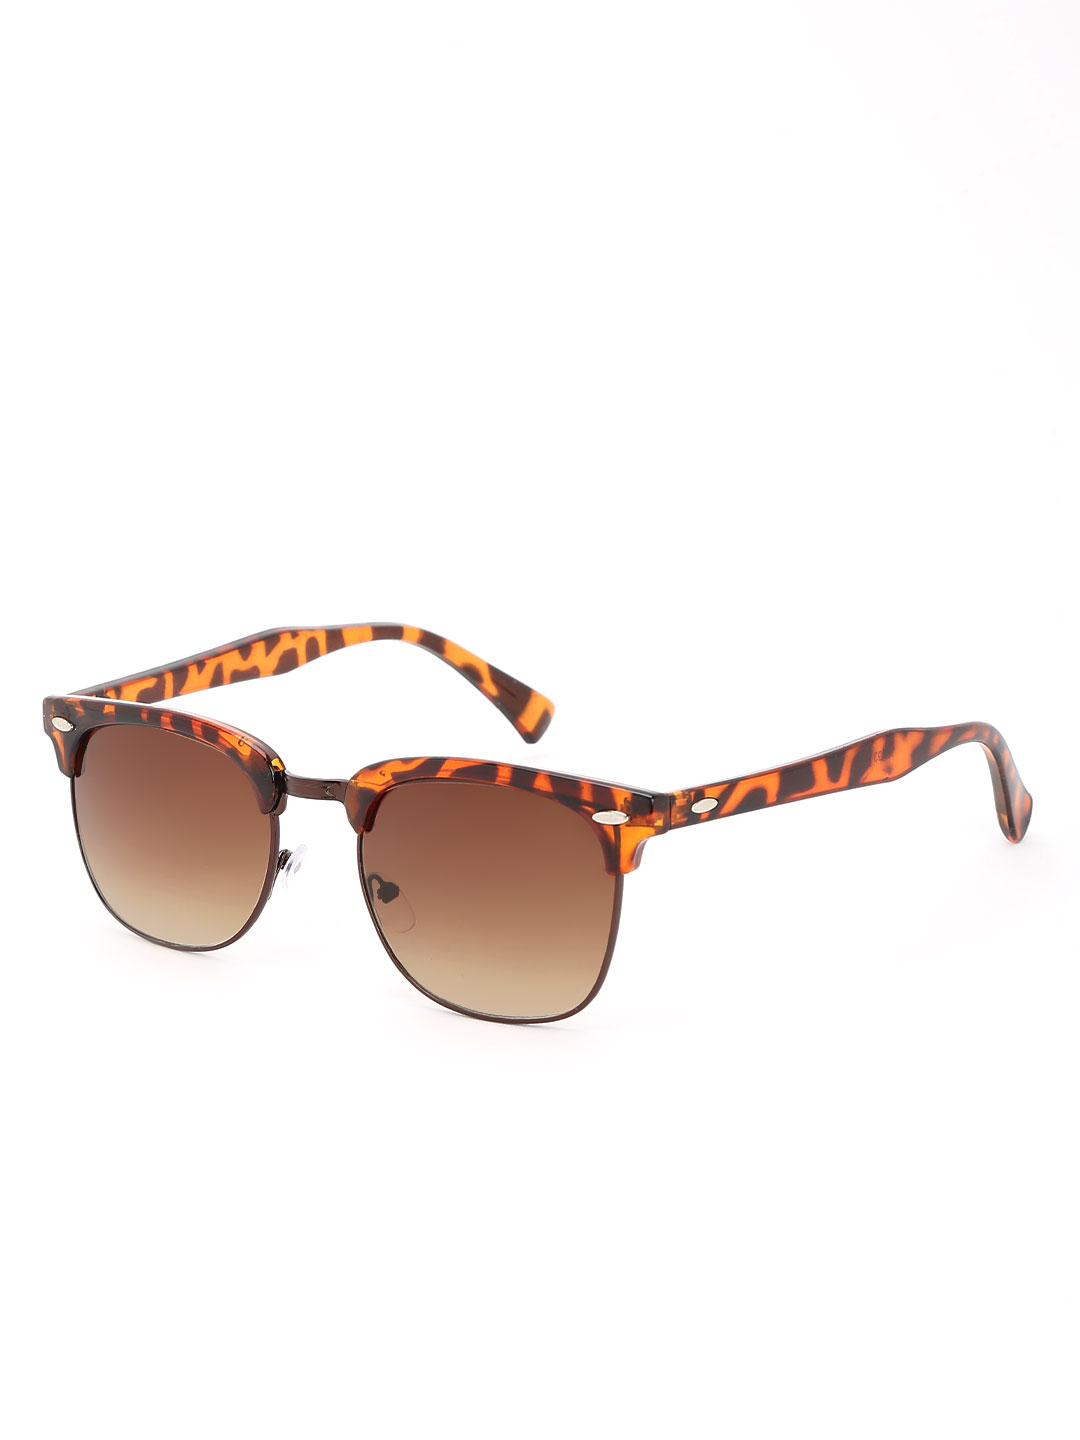 KOOVS Brown Tortoise Shell Classic Sunglasses 1